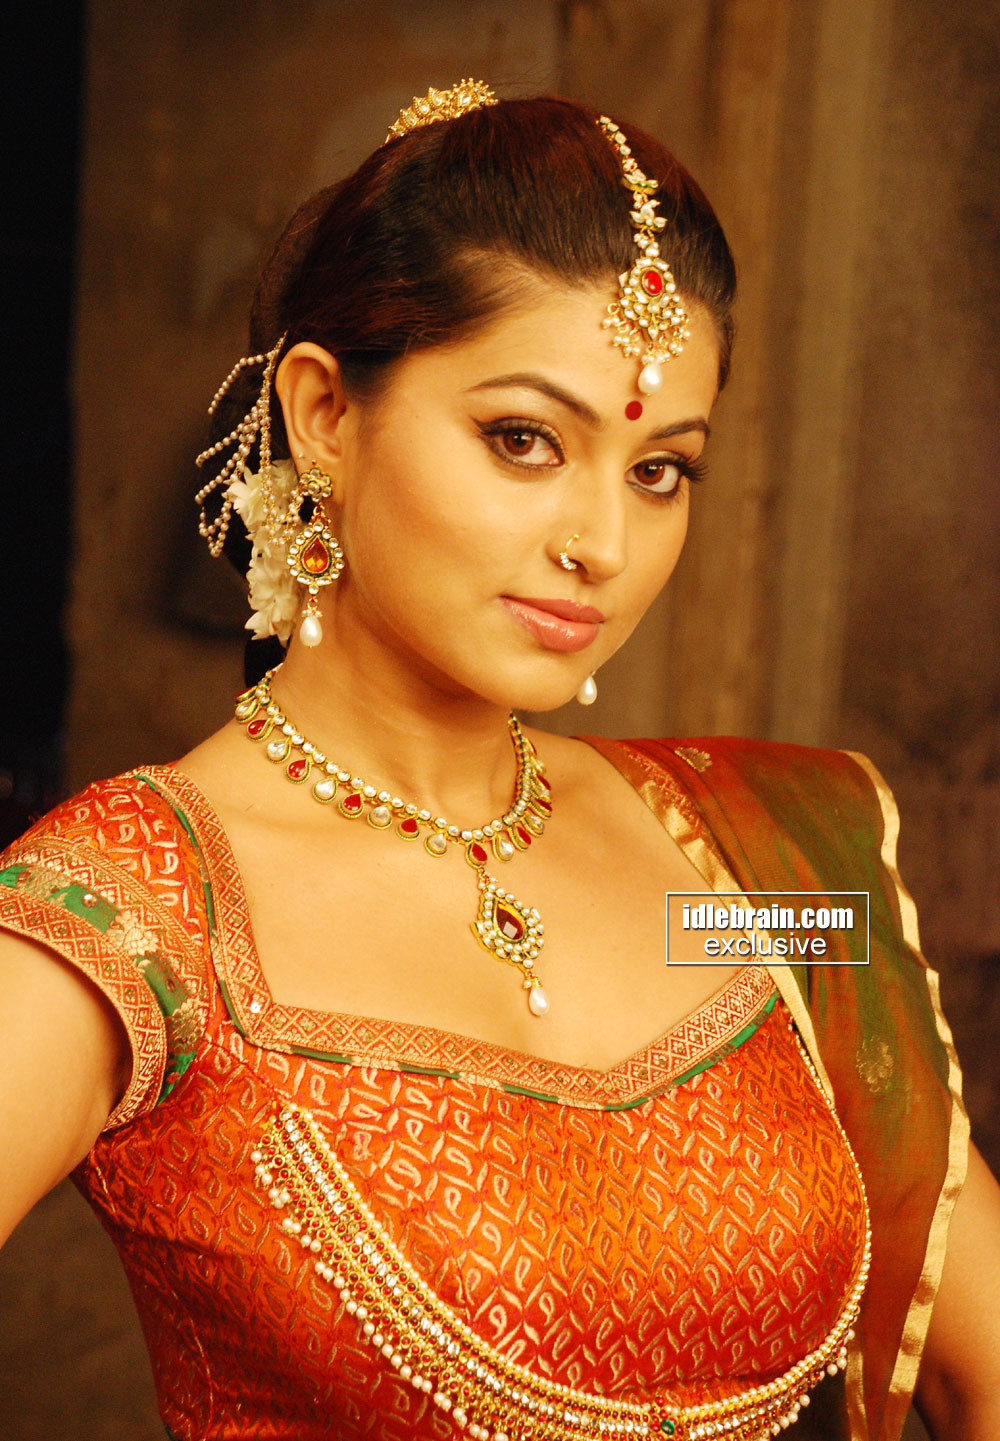 Tamil Actress Sneha Hot Navel Show In Saree  Mallufuncom